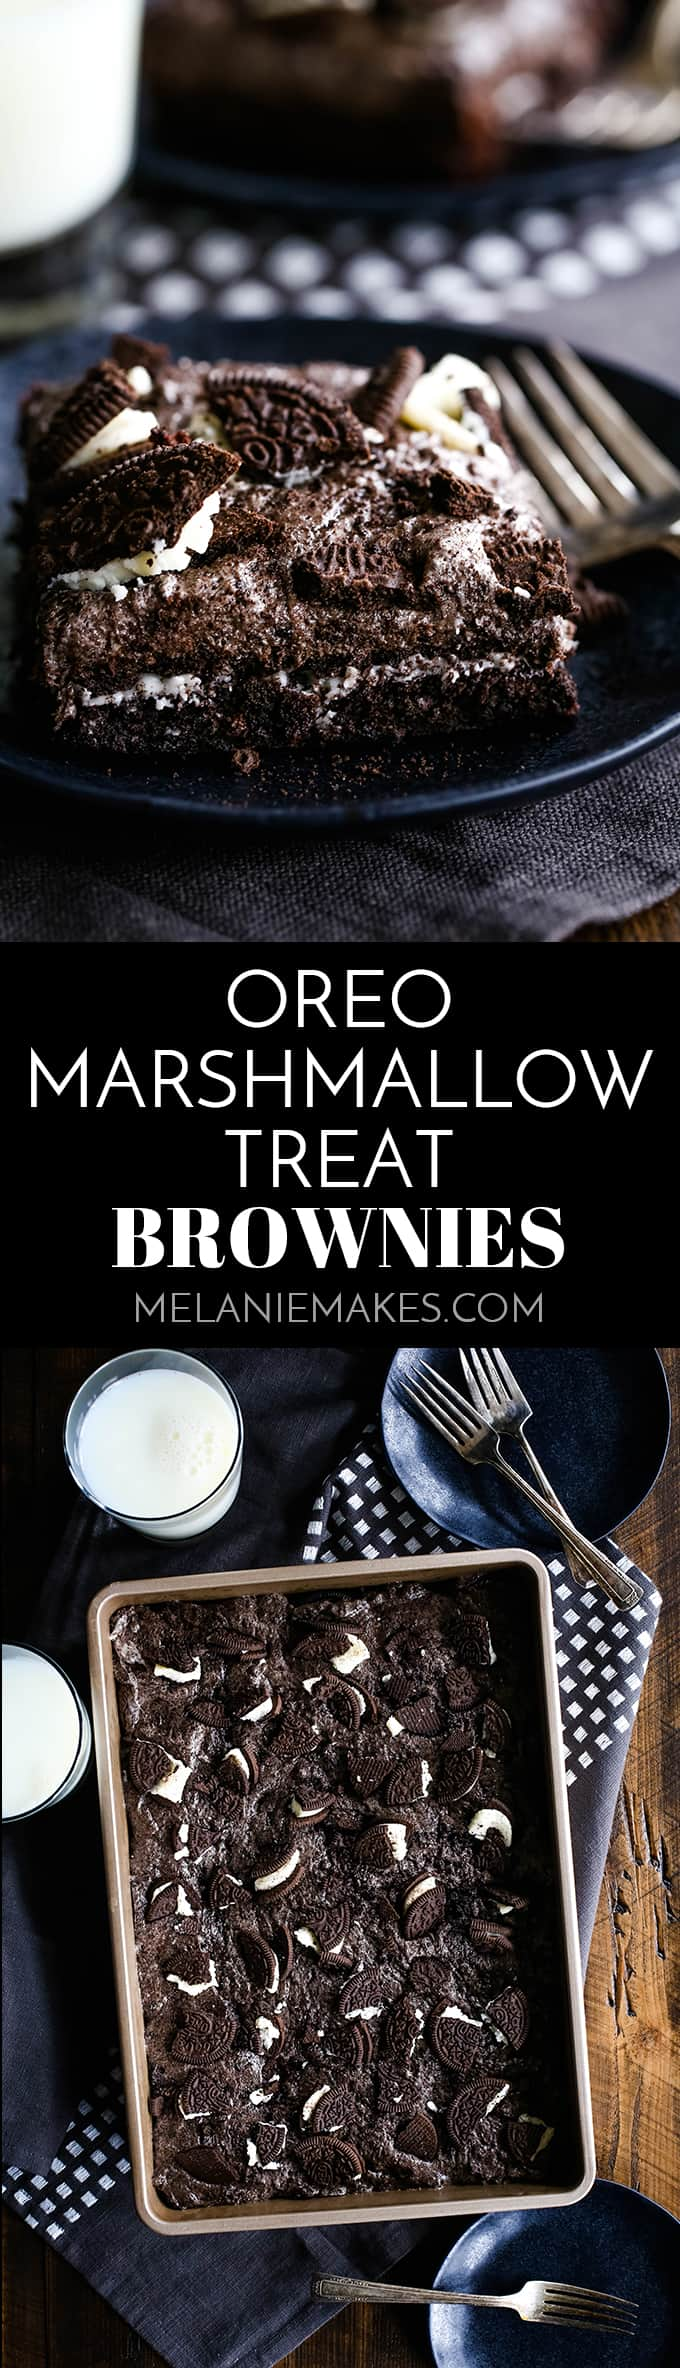 These Oreo Marshmallow Treat Brownies are what Oreo lovers dream about.  A single pan of brownies that includes TWO packages of Double Stuf Oreos. #oreo #marshmallow #brownies #chocolate #dessertrecipes #easyrecipe